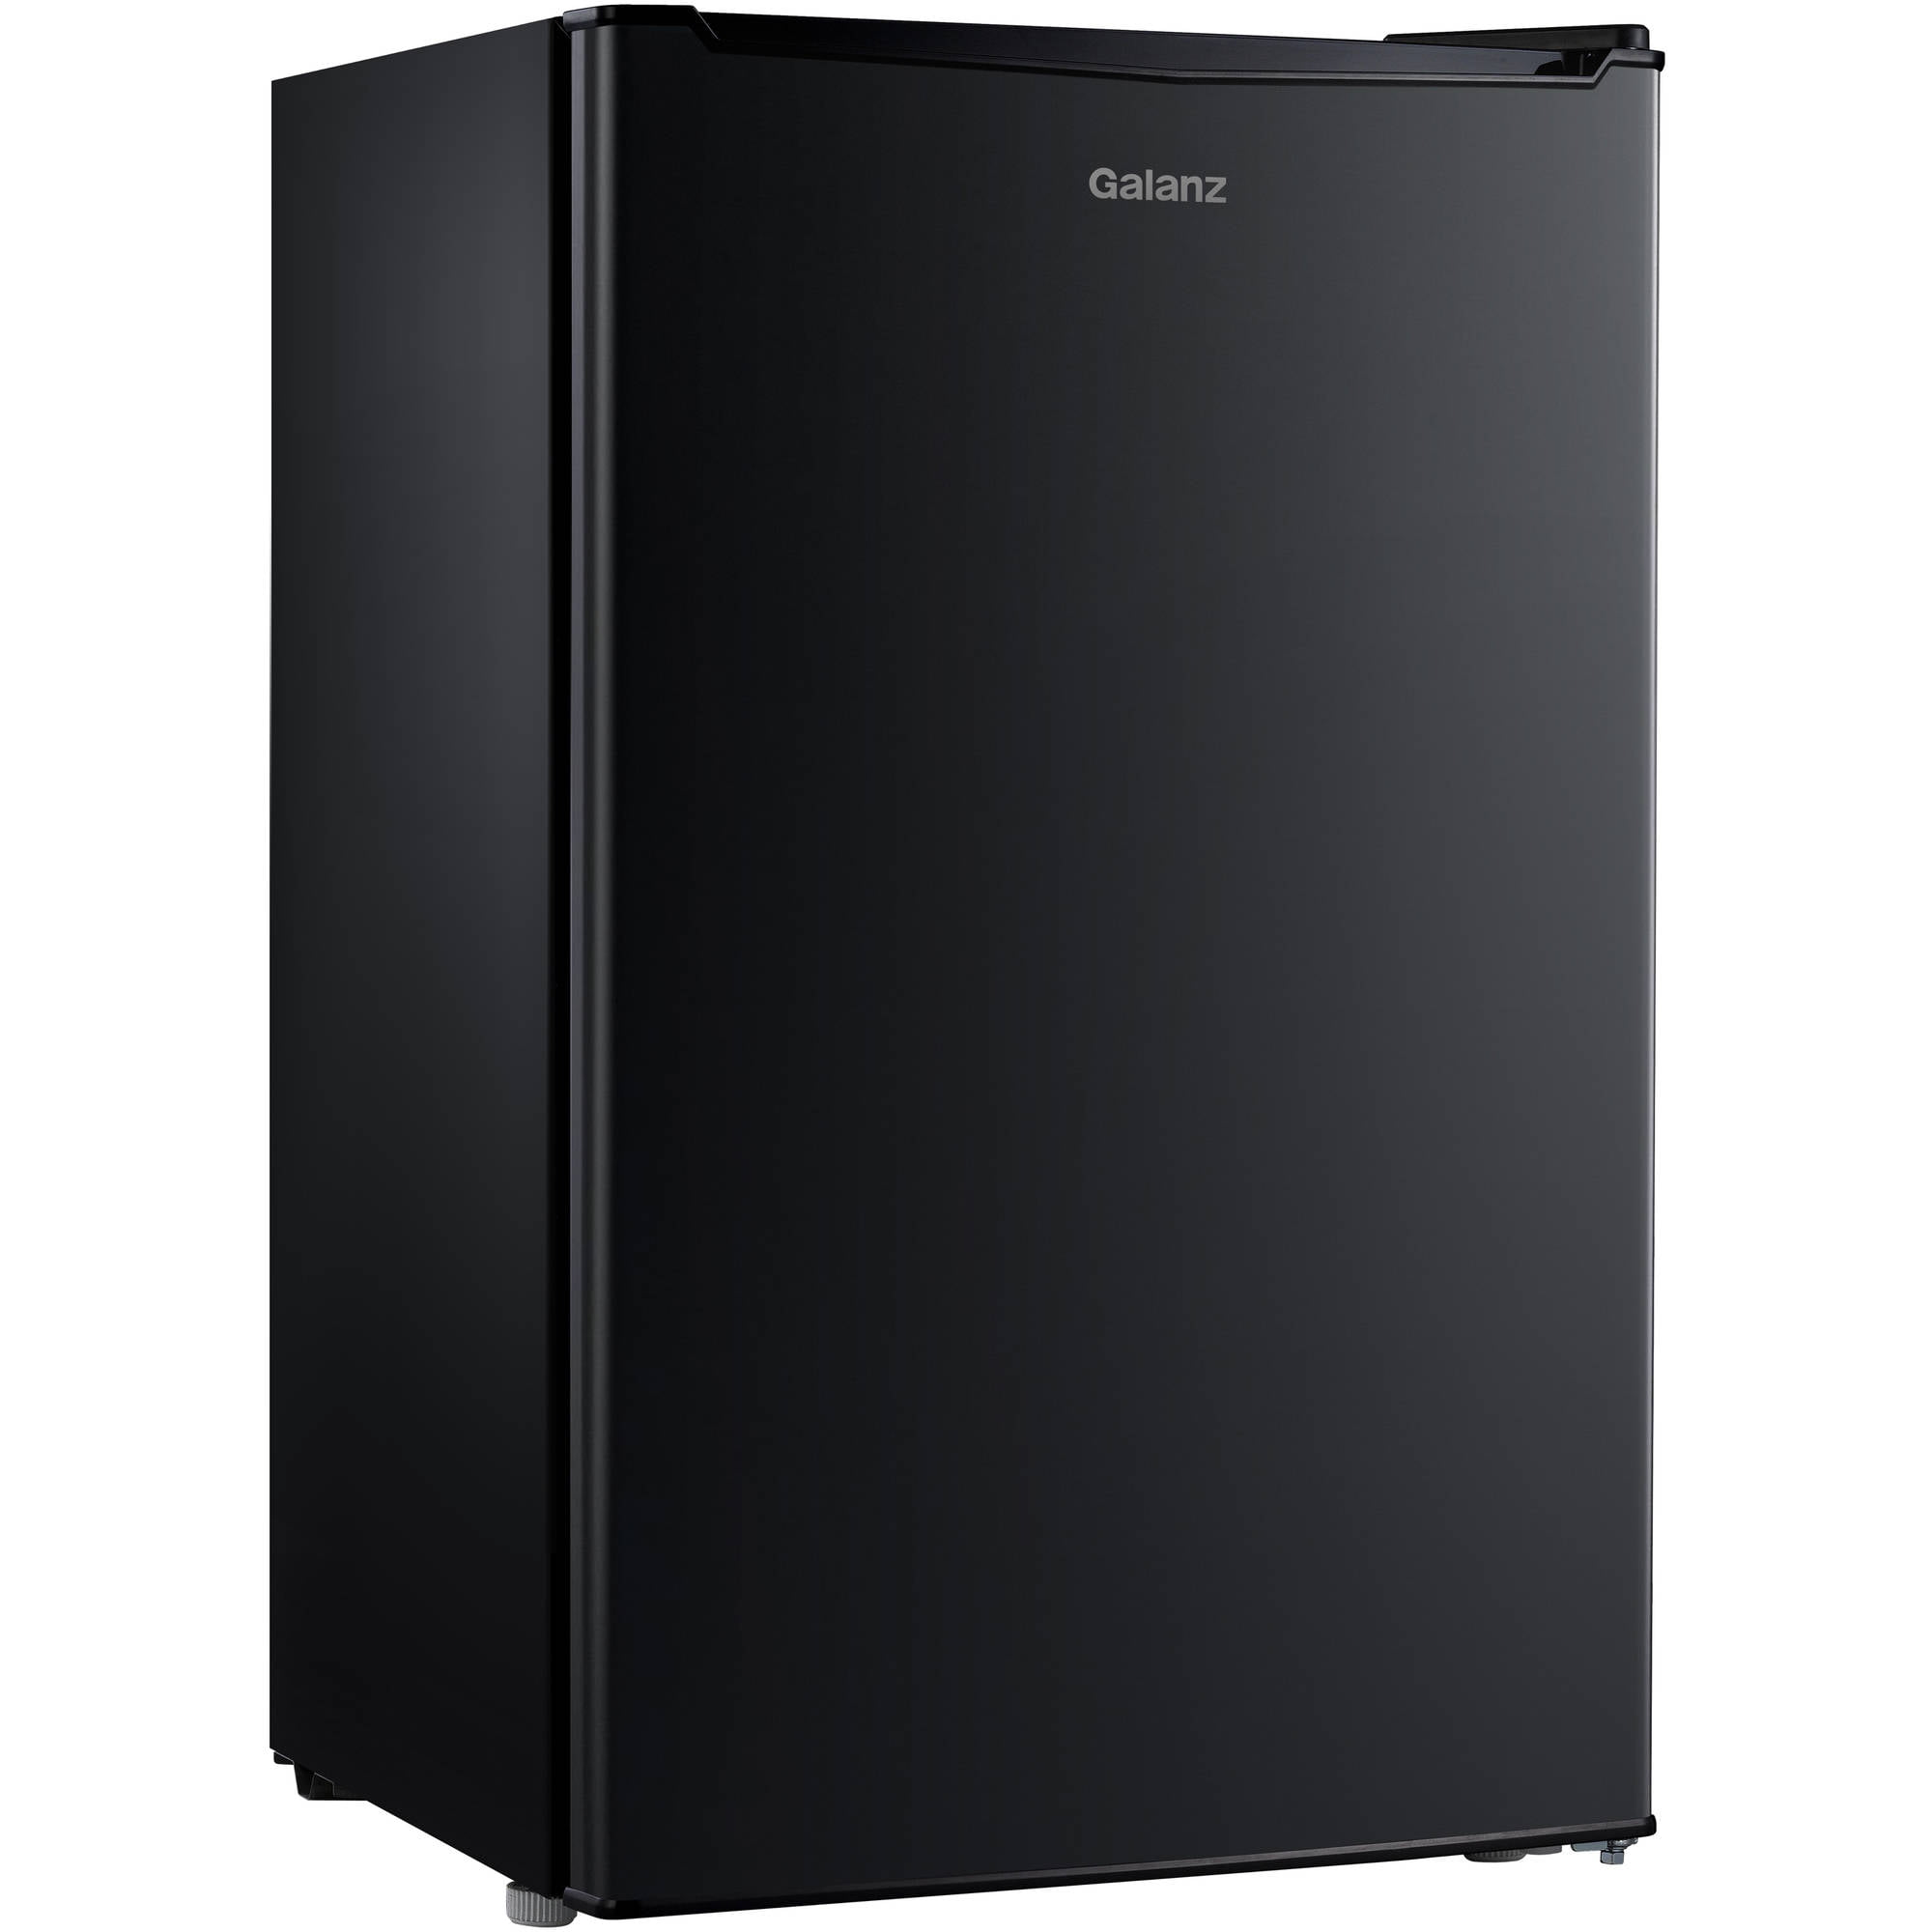 Galanz 3 5 cu ft compact single door refrigerator black for 1 door chiller